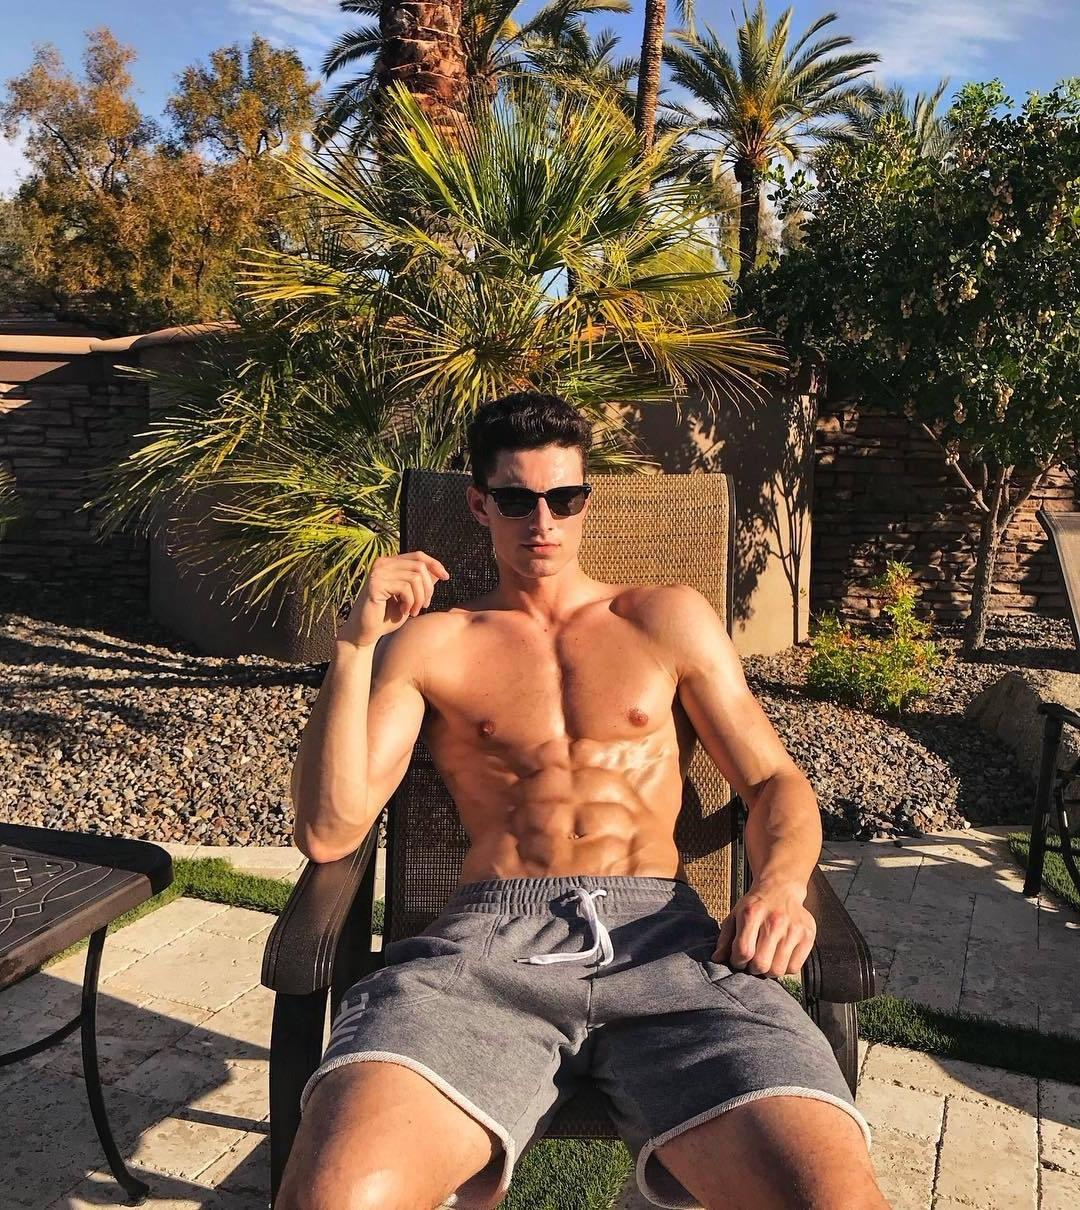 hot-bad-boys-sunglasses-ripped-sixpack-abs-tanning-cocky-male-model